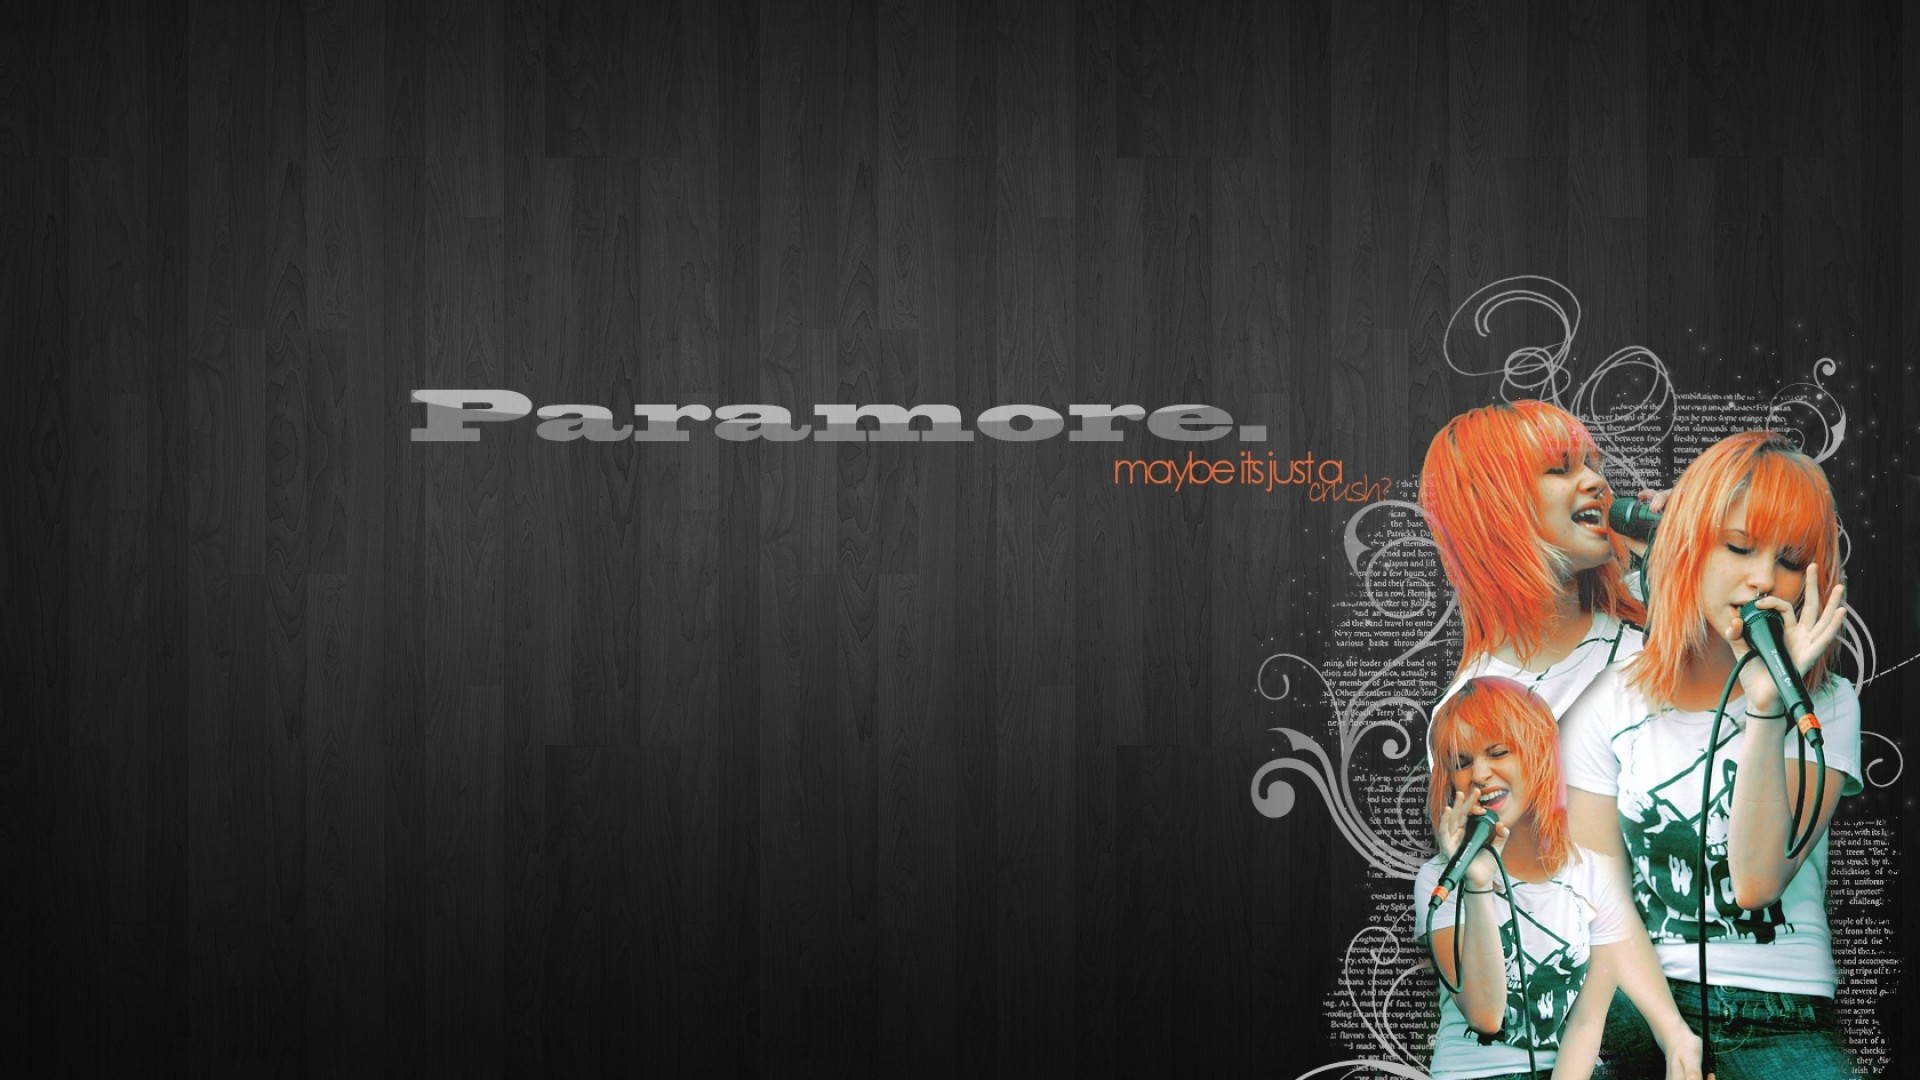 1920x1080 paramore, background, name